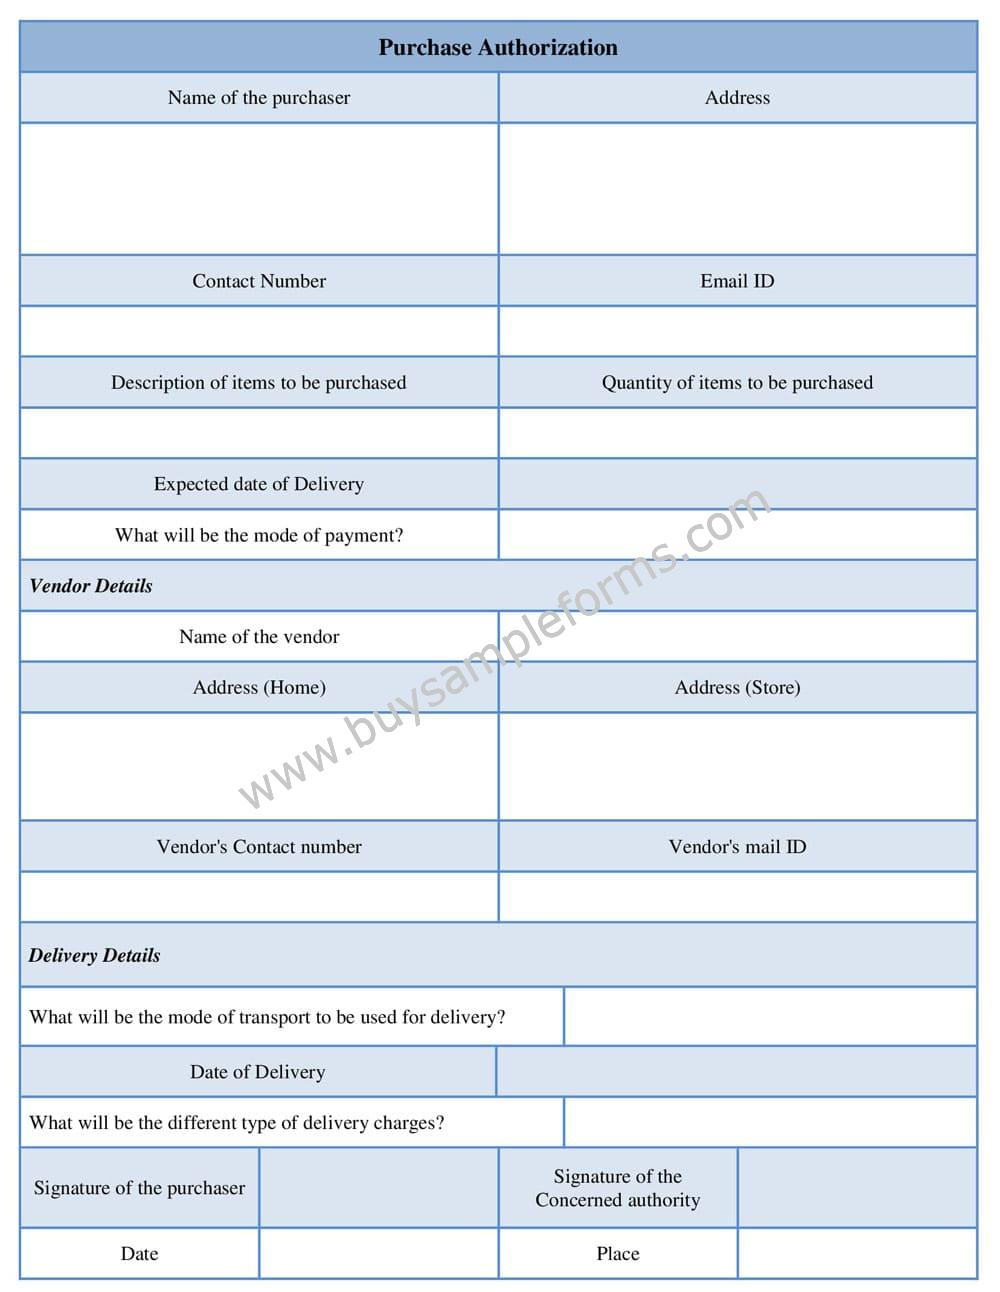 Simple Purchase Authorization Form Template